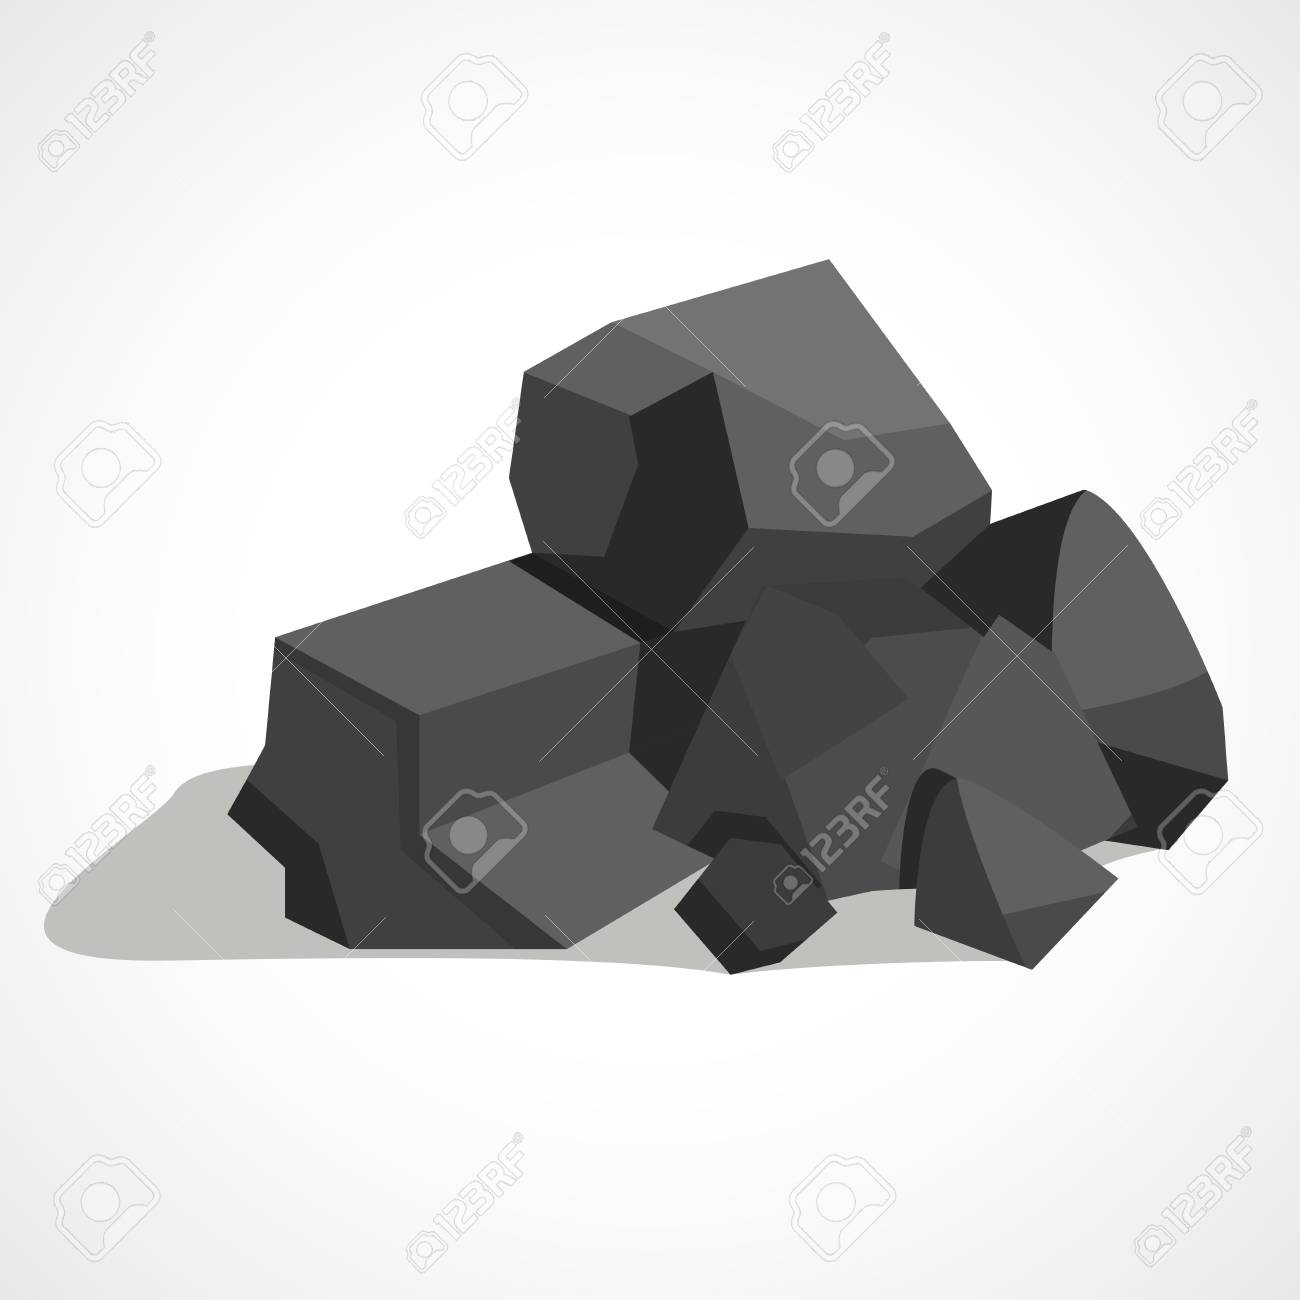 black minerals from the mine coal which is mined in the mine